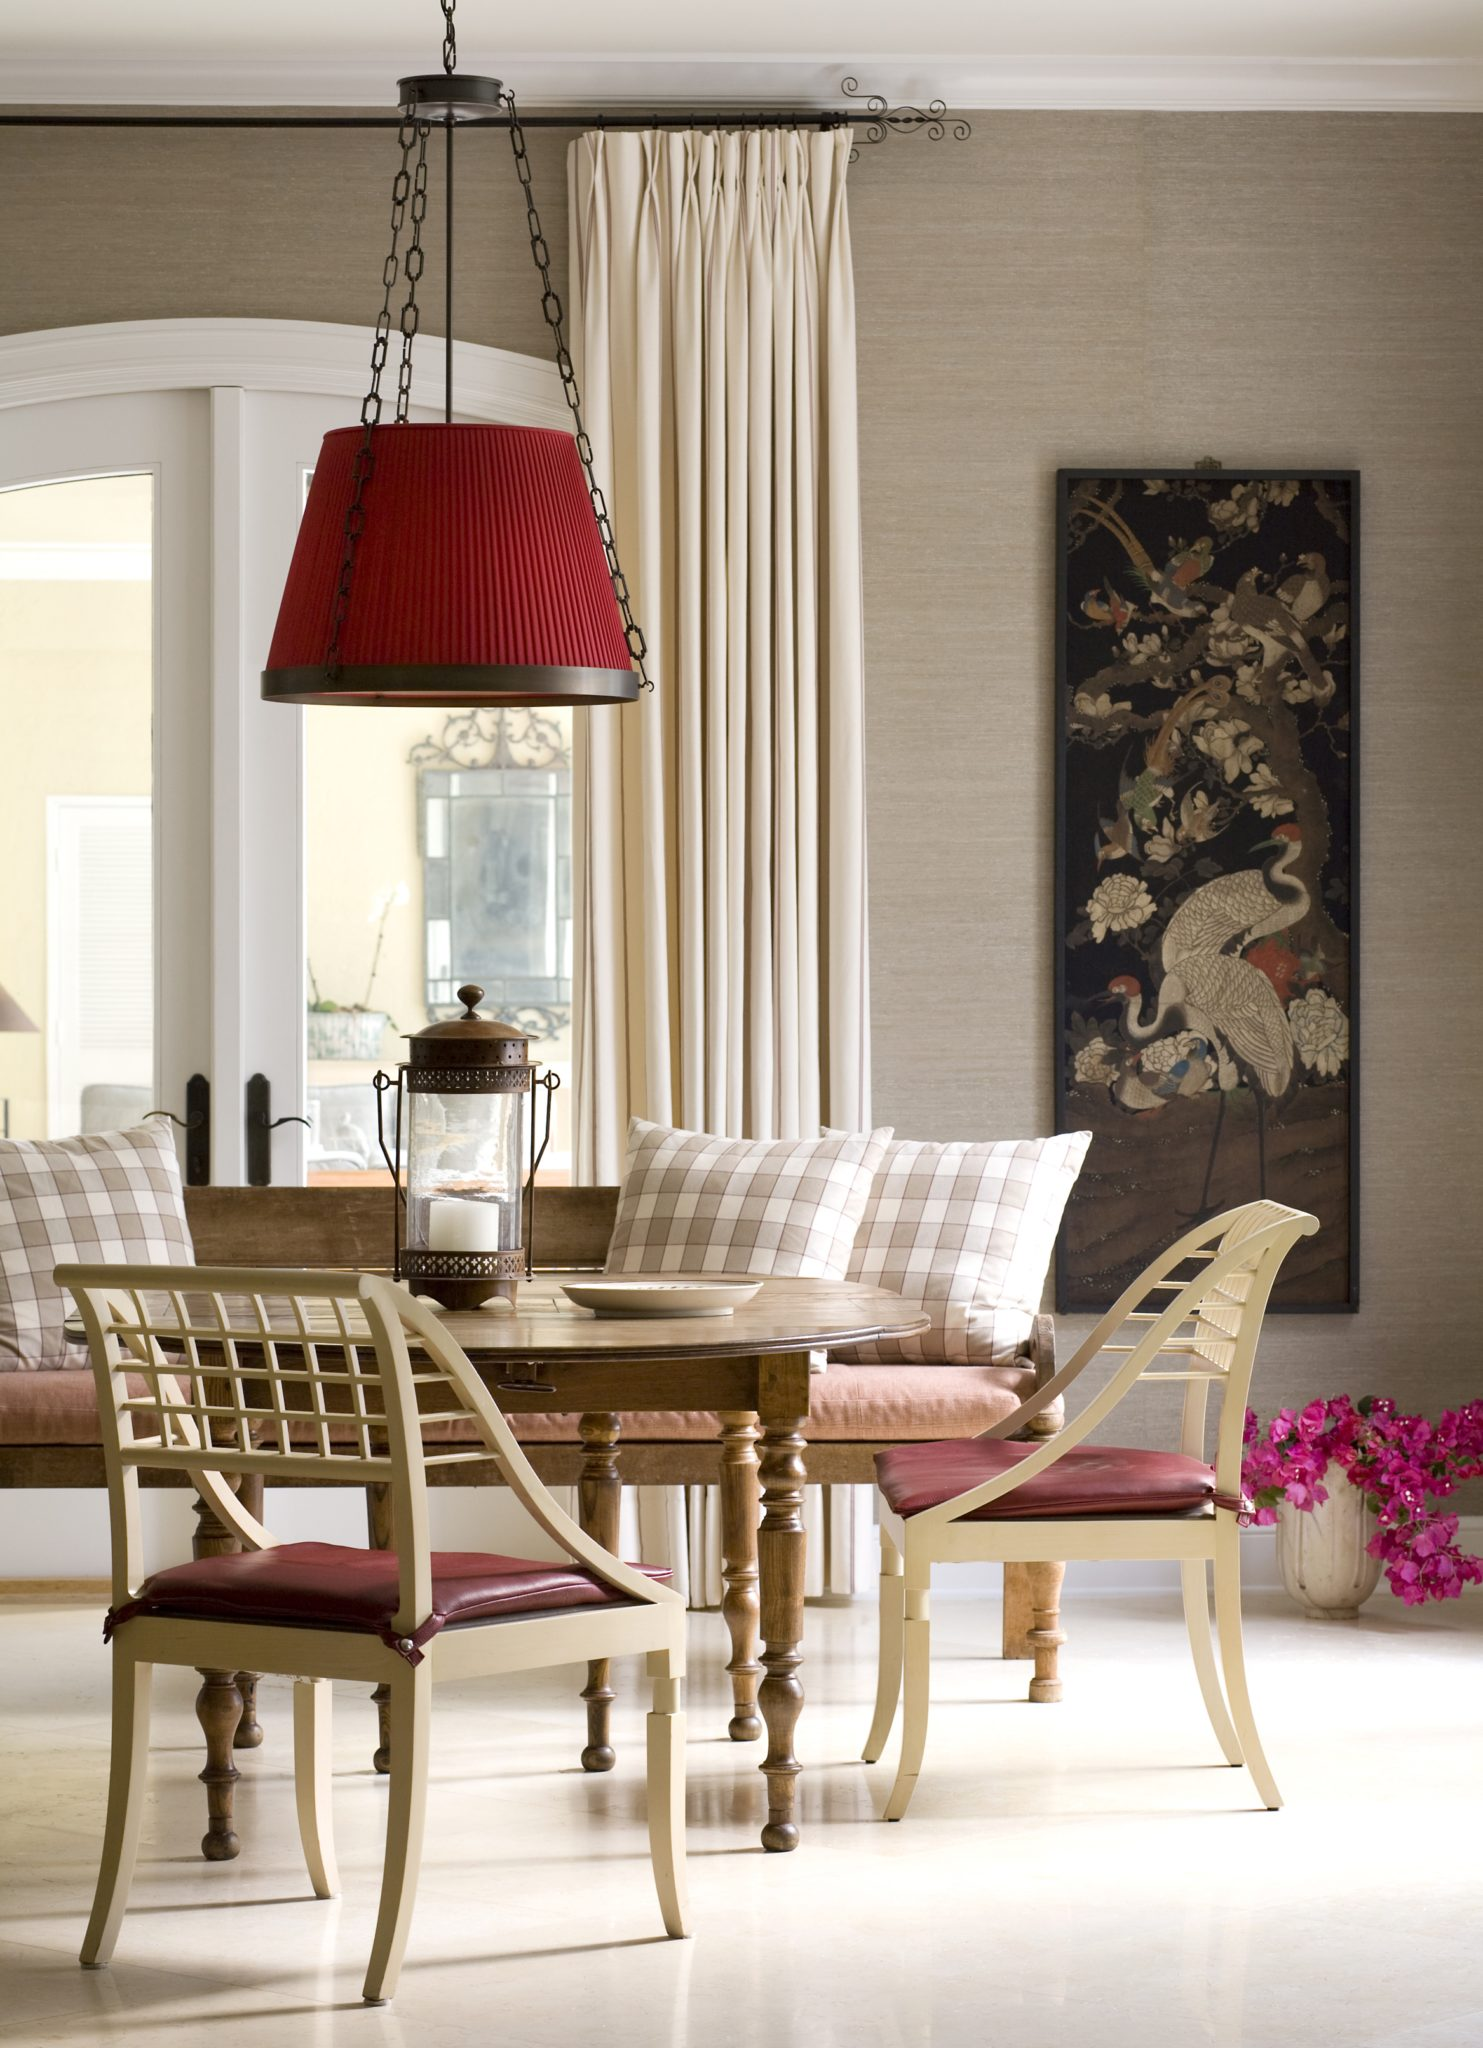 West Palm Beach family dining room by Anthony Cochran Design